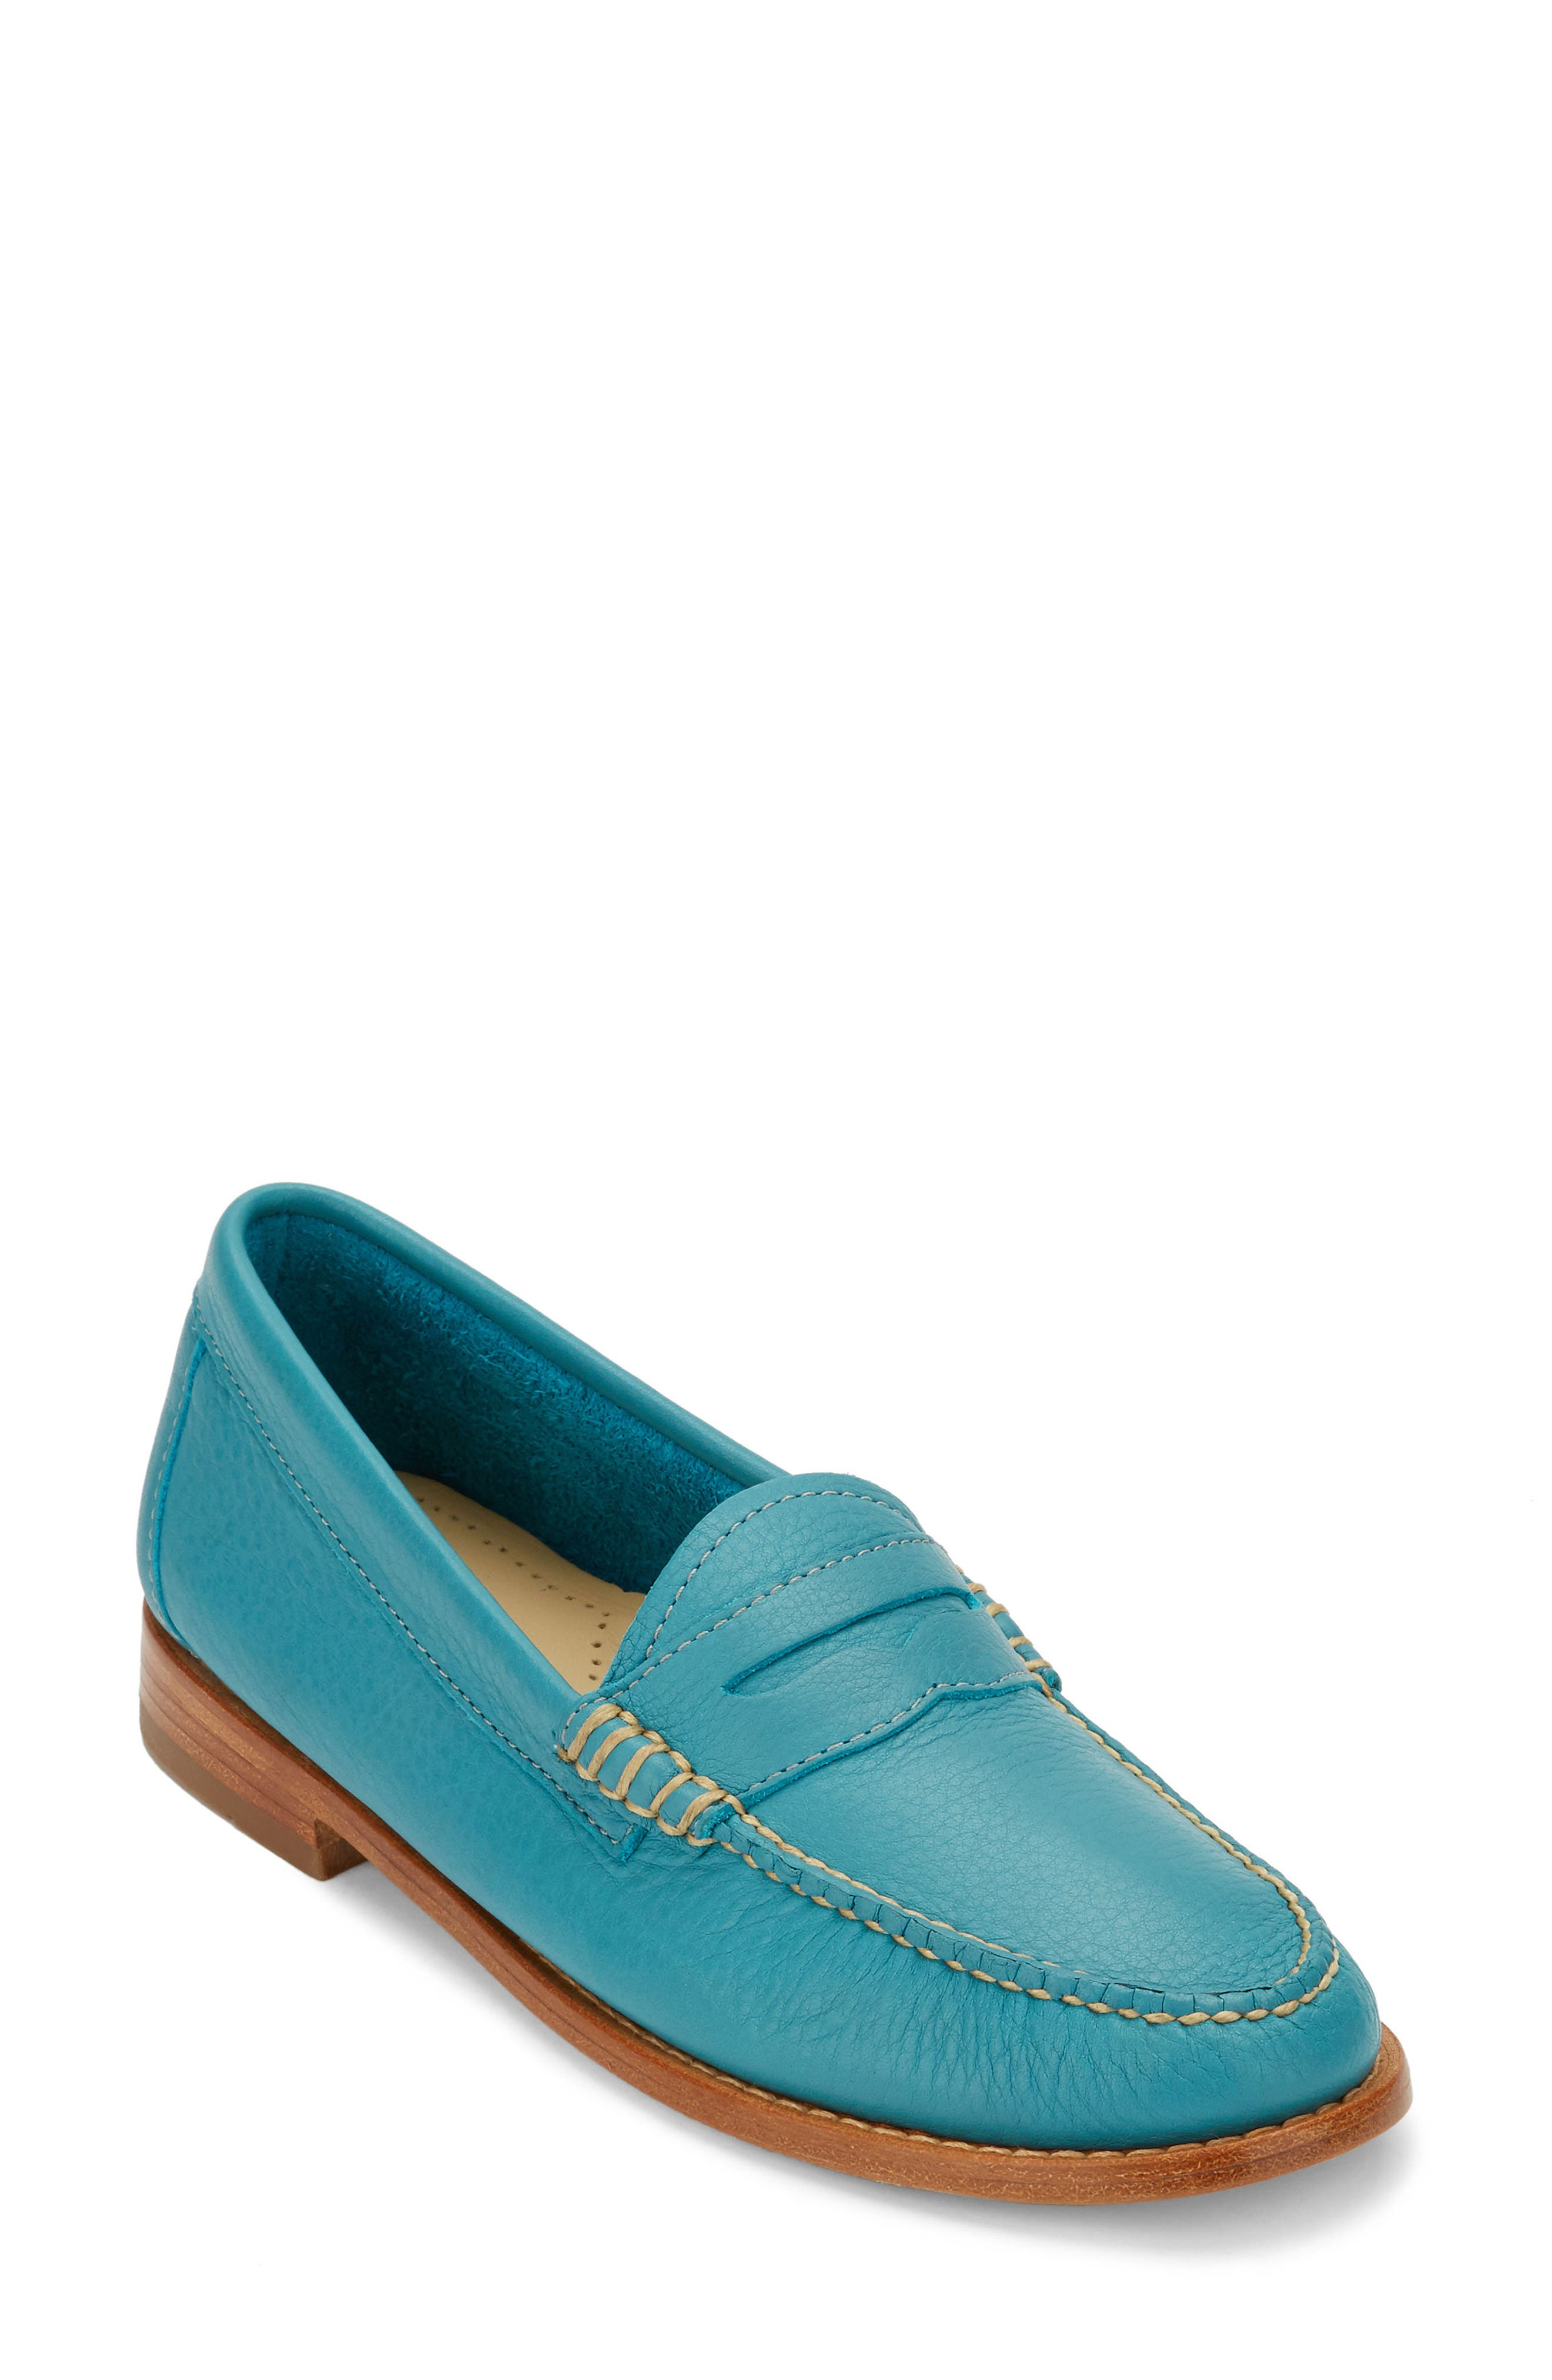 'Whitney' Loafer,                             Main thumbnail 35, color,